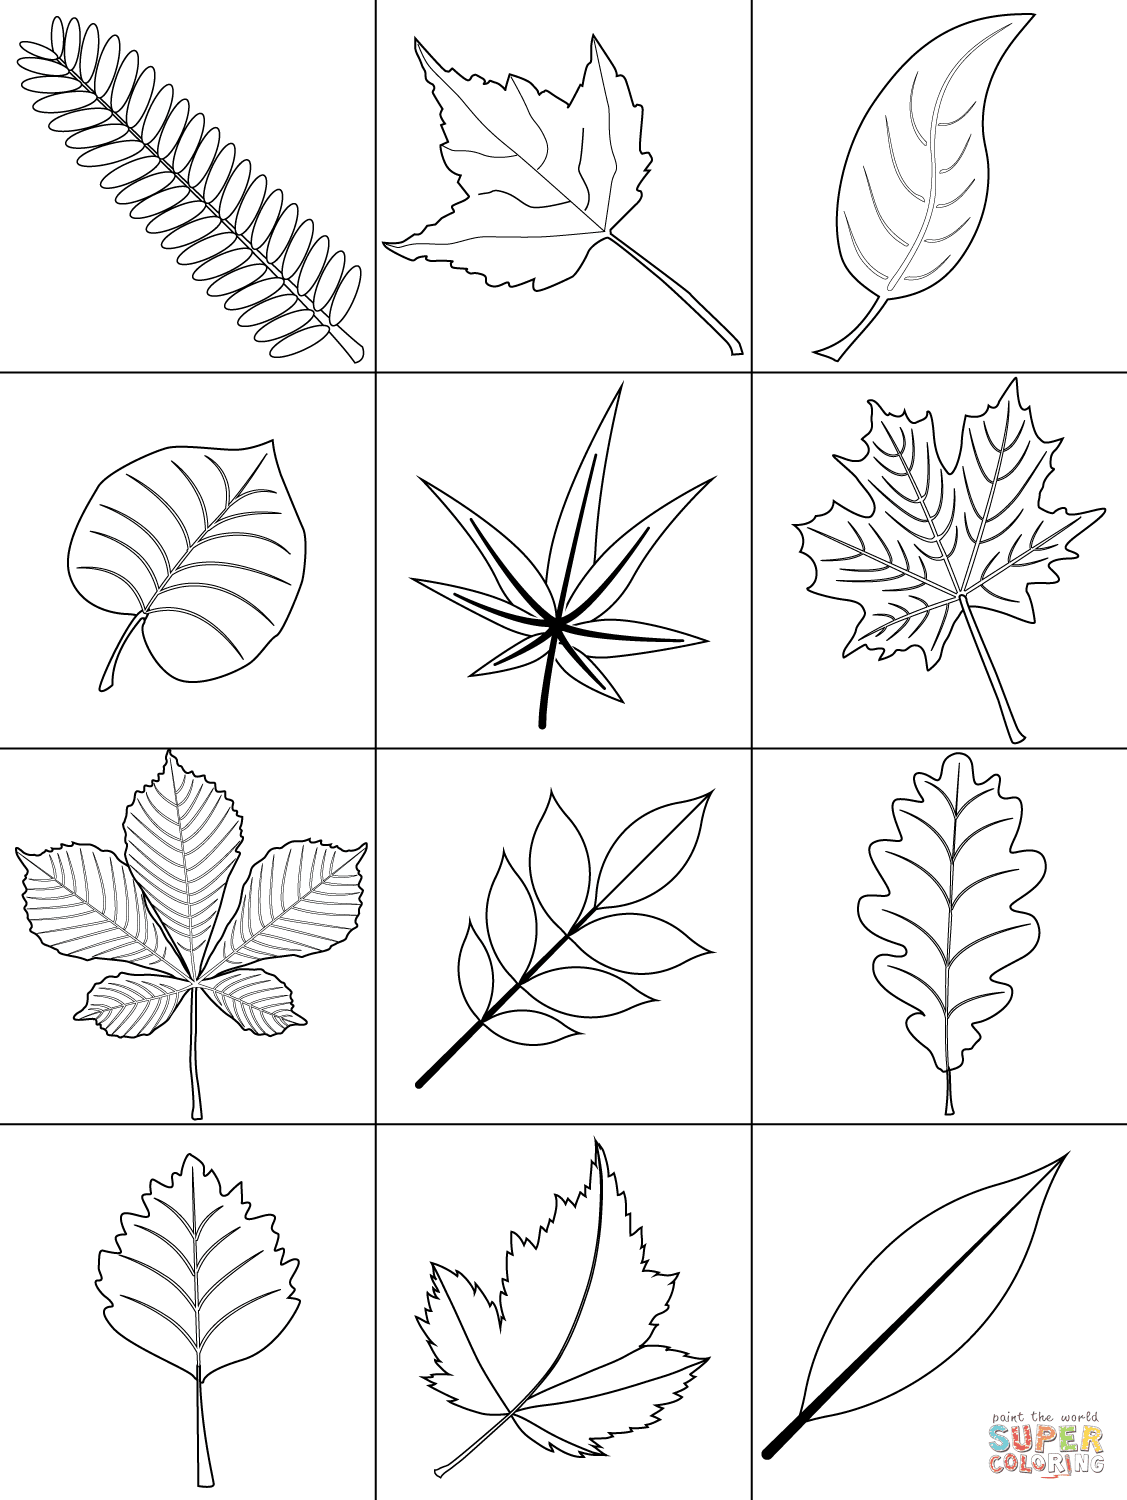 Autumn Leaves coloring page | Free Printable Coloring Pages